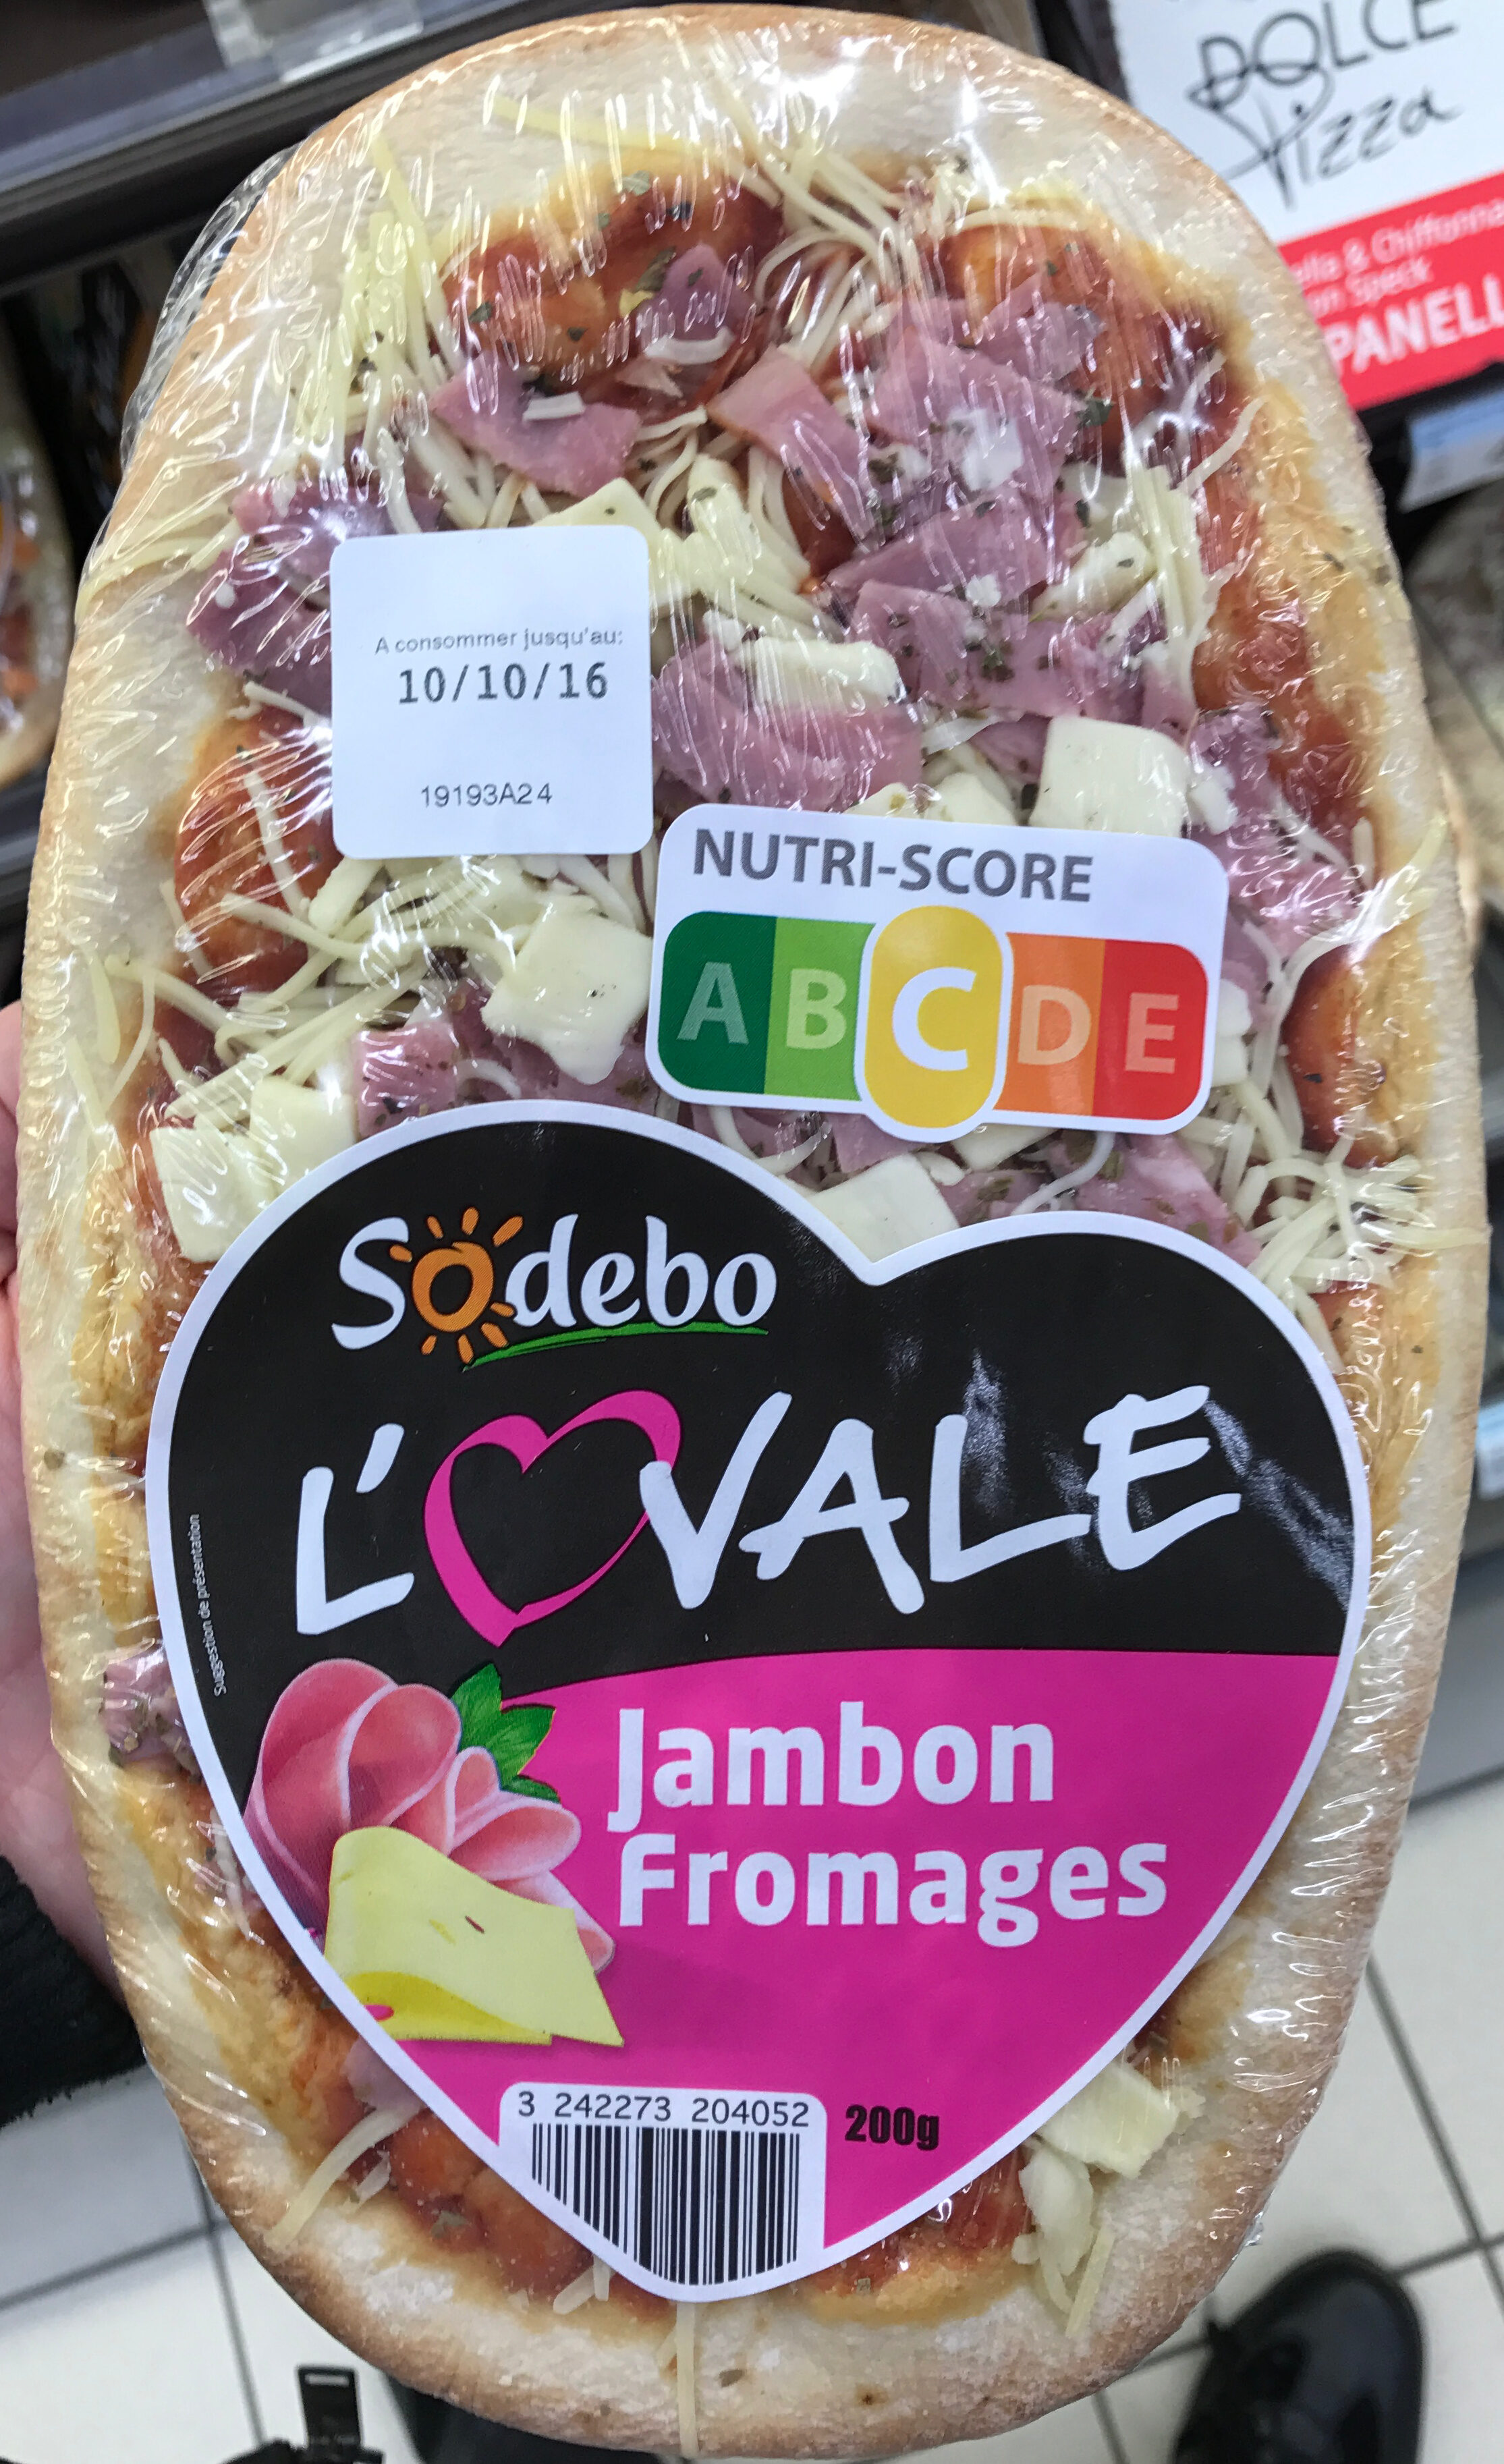 Sodebo L'Ovale Jambon Fromages - Product